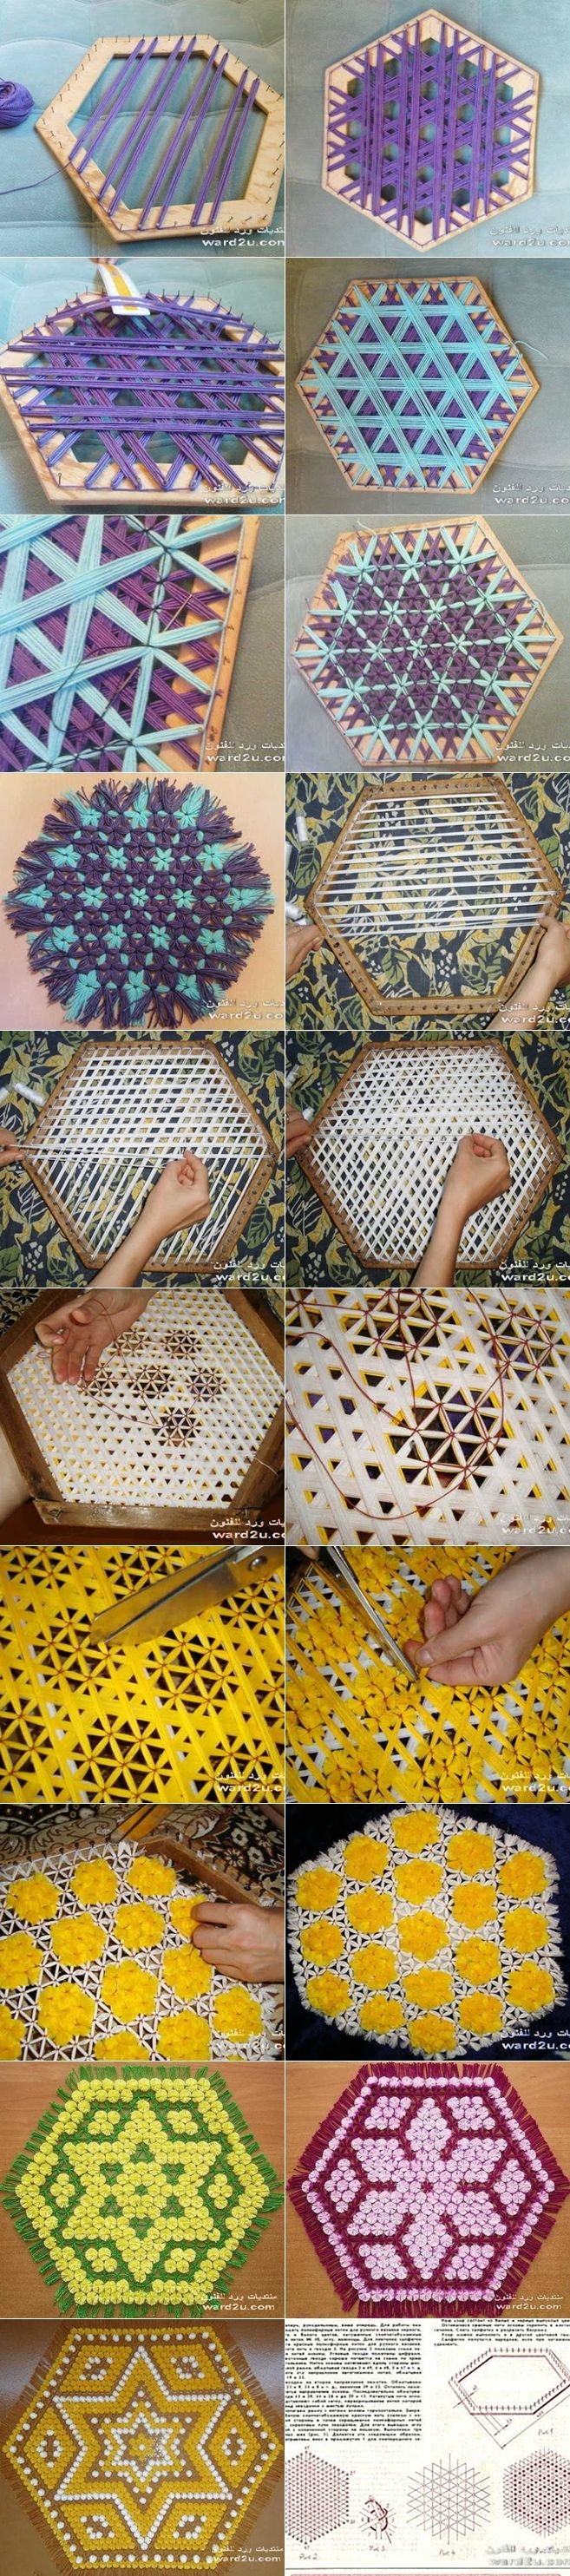 DIY Beautiful Woven Hexagonal Coaster | www.FabArtDIY.com LIKE Us on Facebook ==> https://www.facebook.com/FabArtDIY